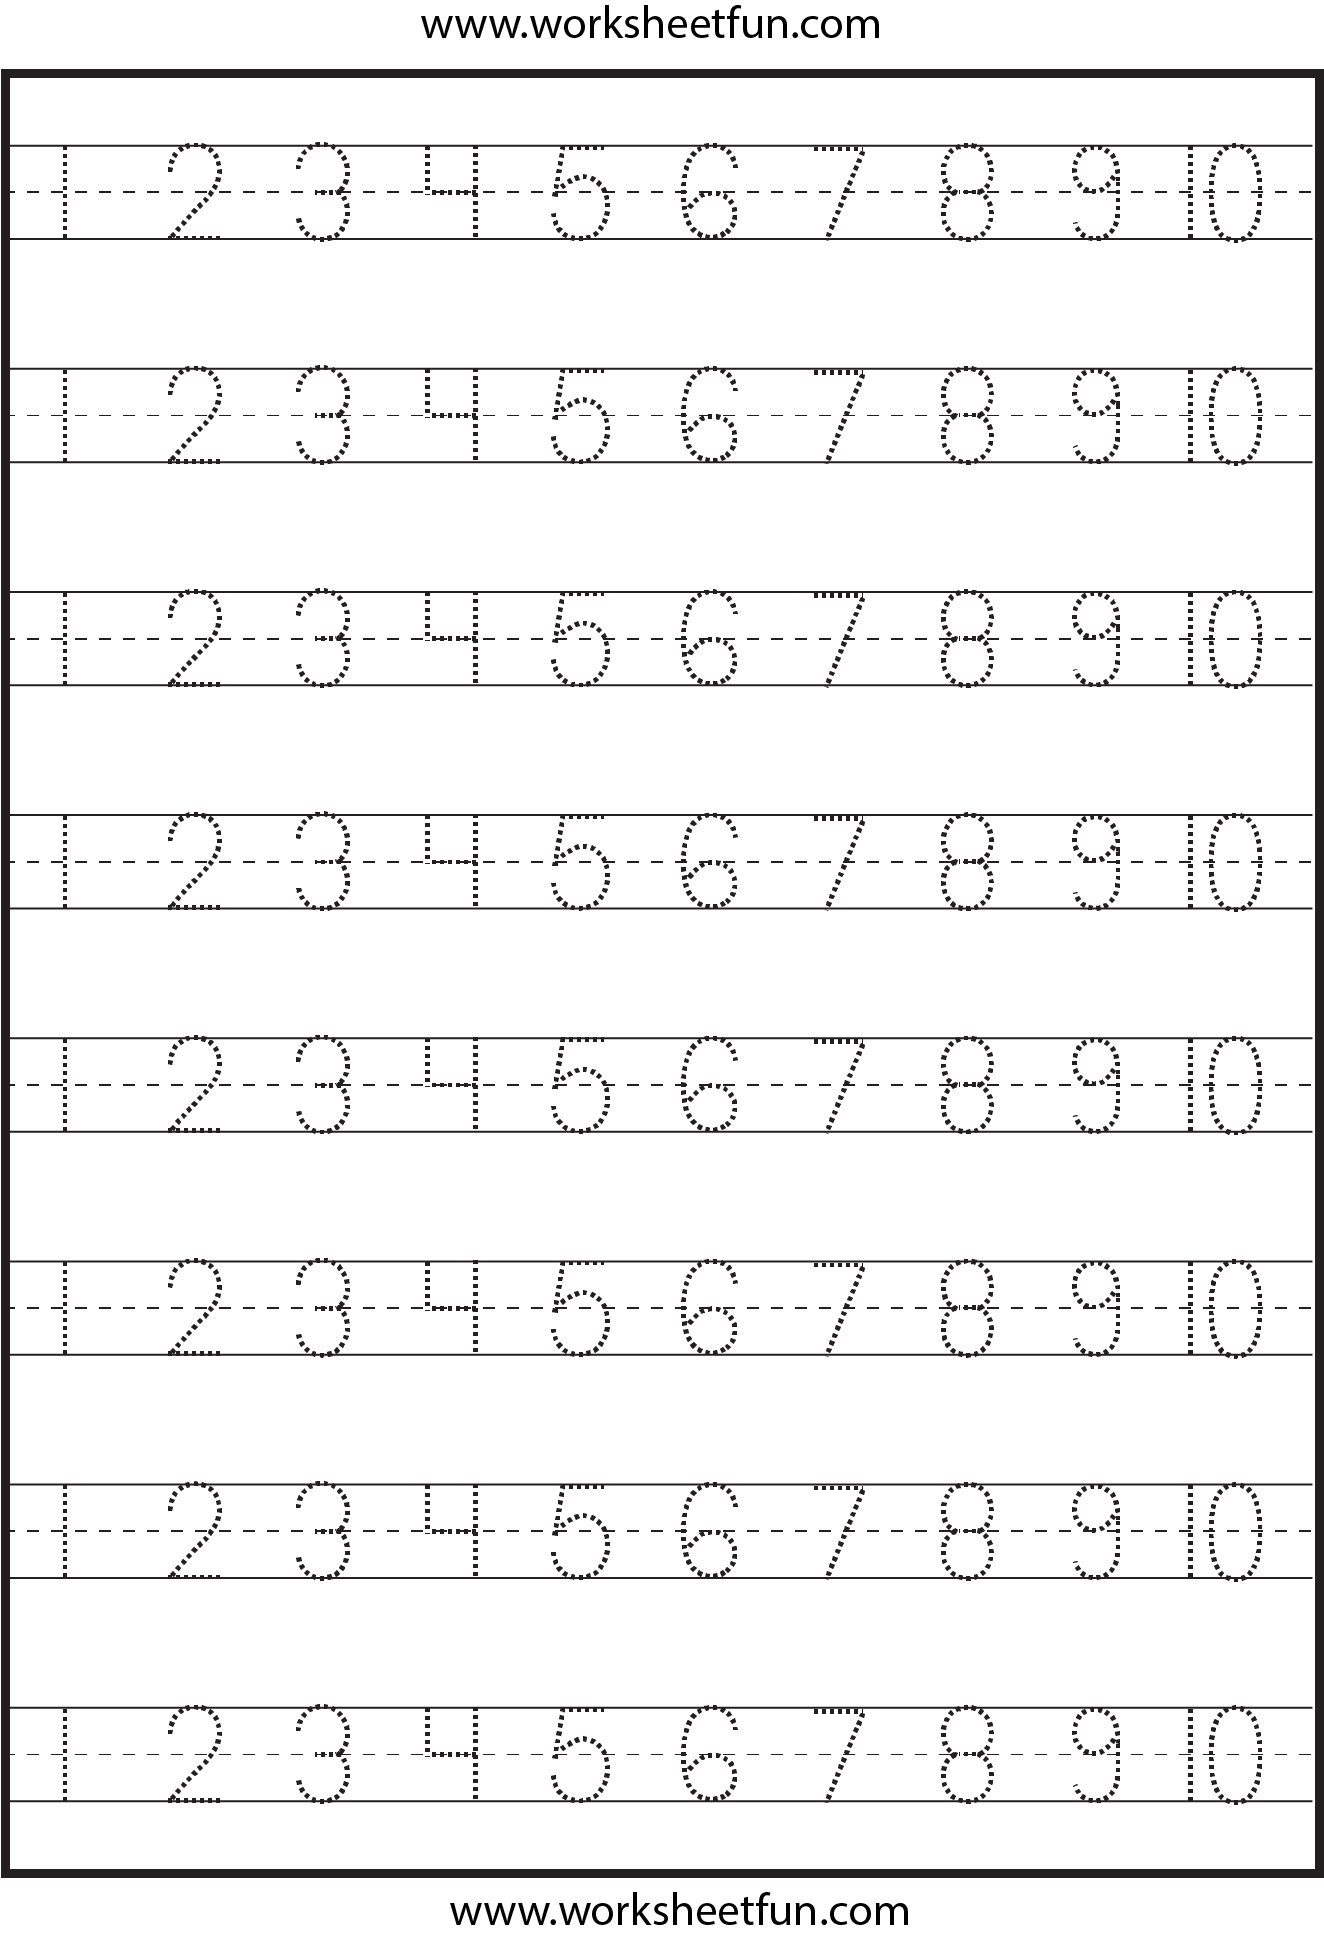 worksheet Tracing Numbers 1-10 number tracing 1 10 worksheet free printable worksheets tracing